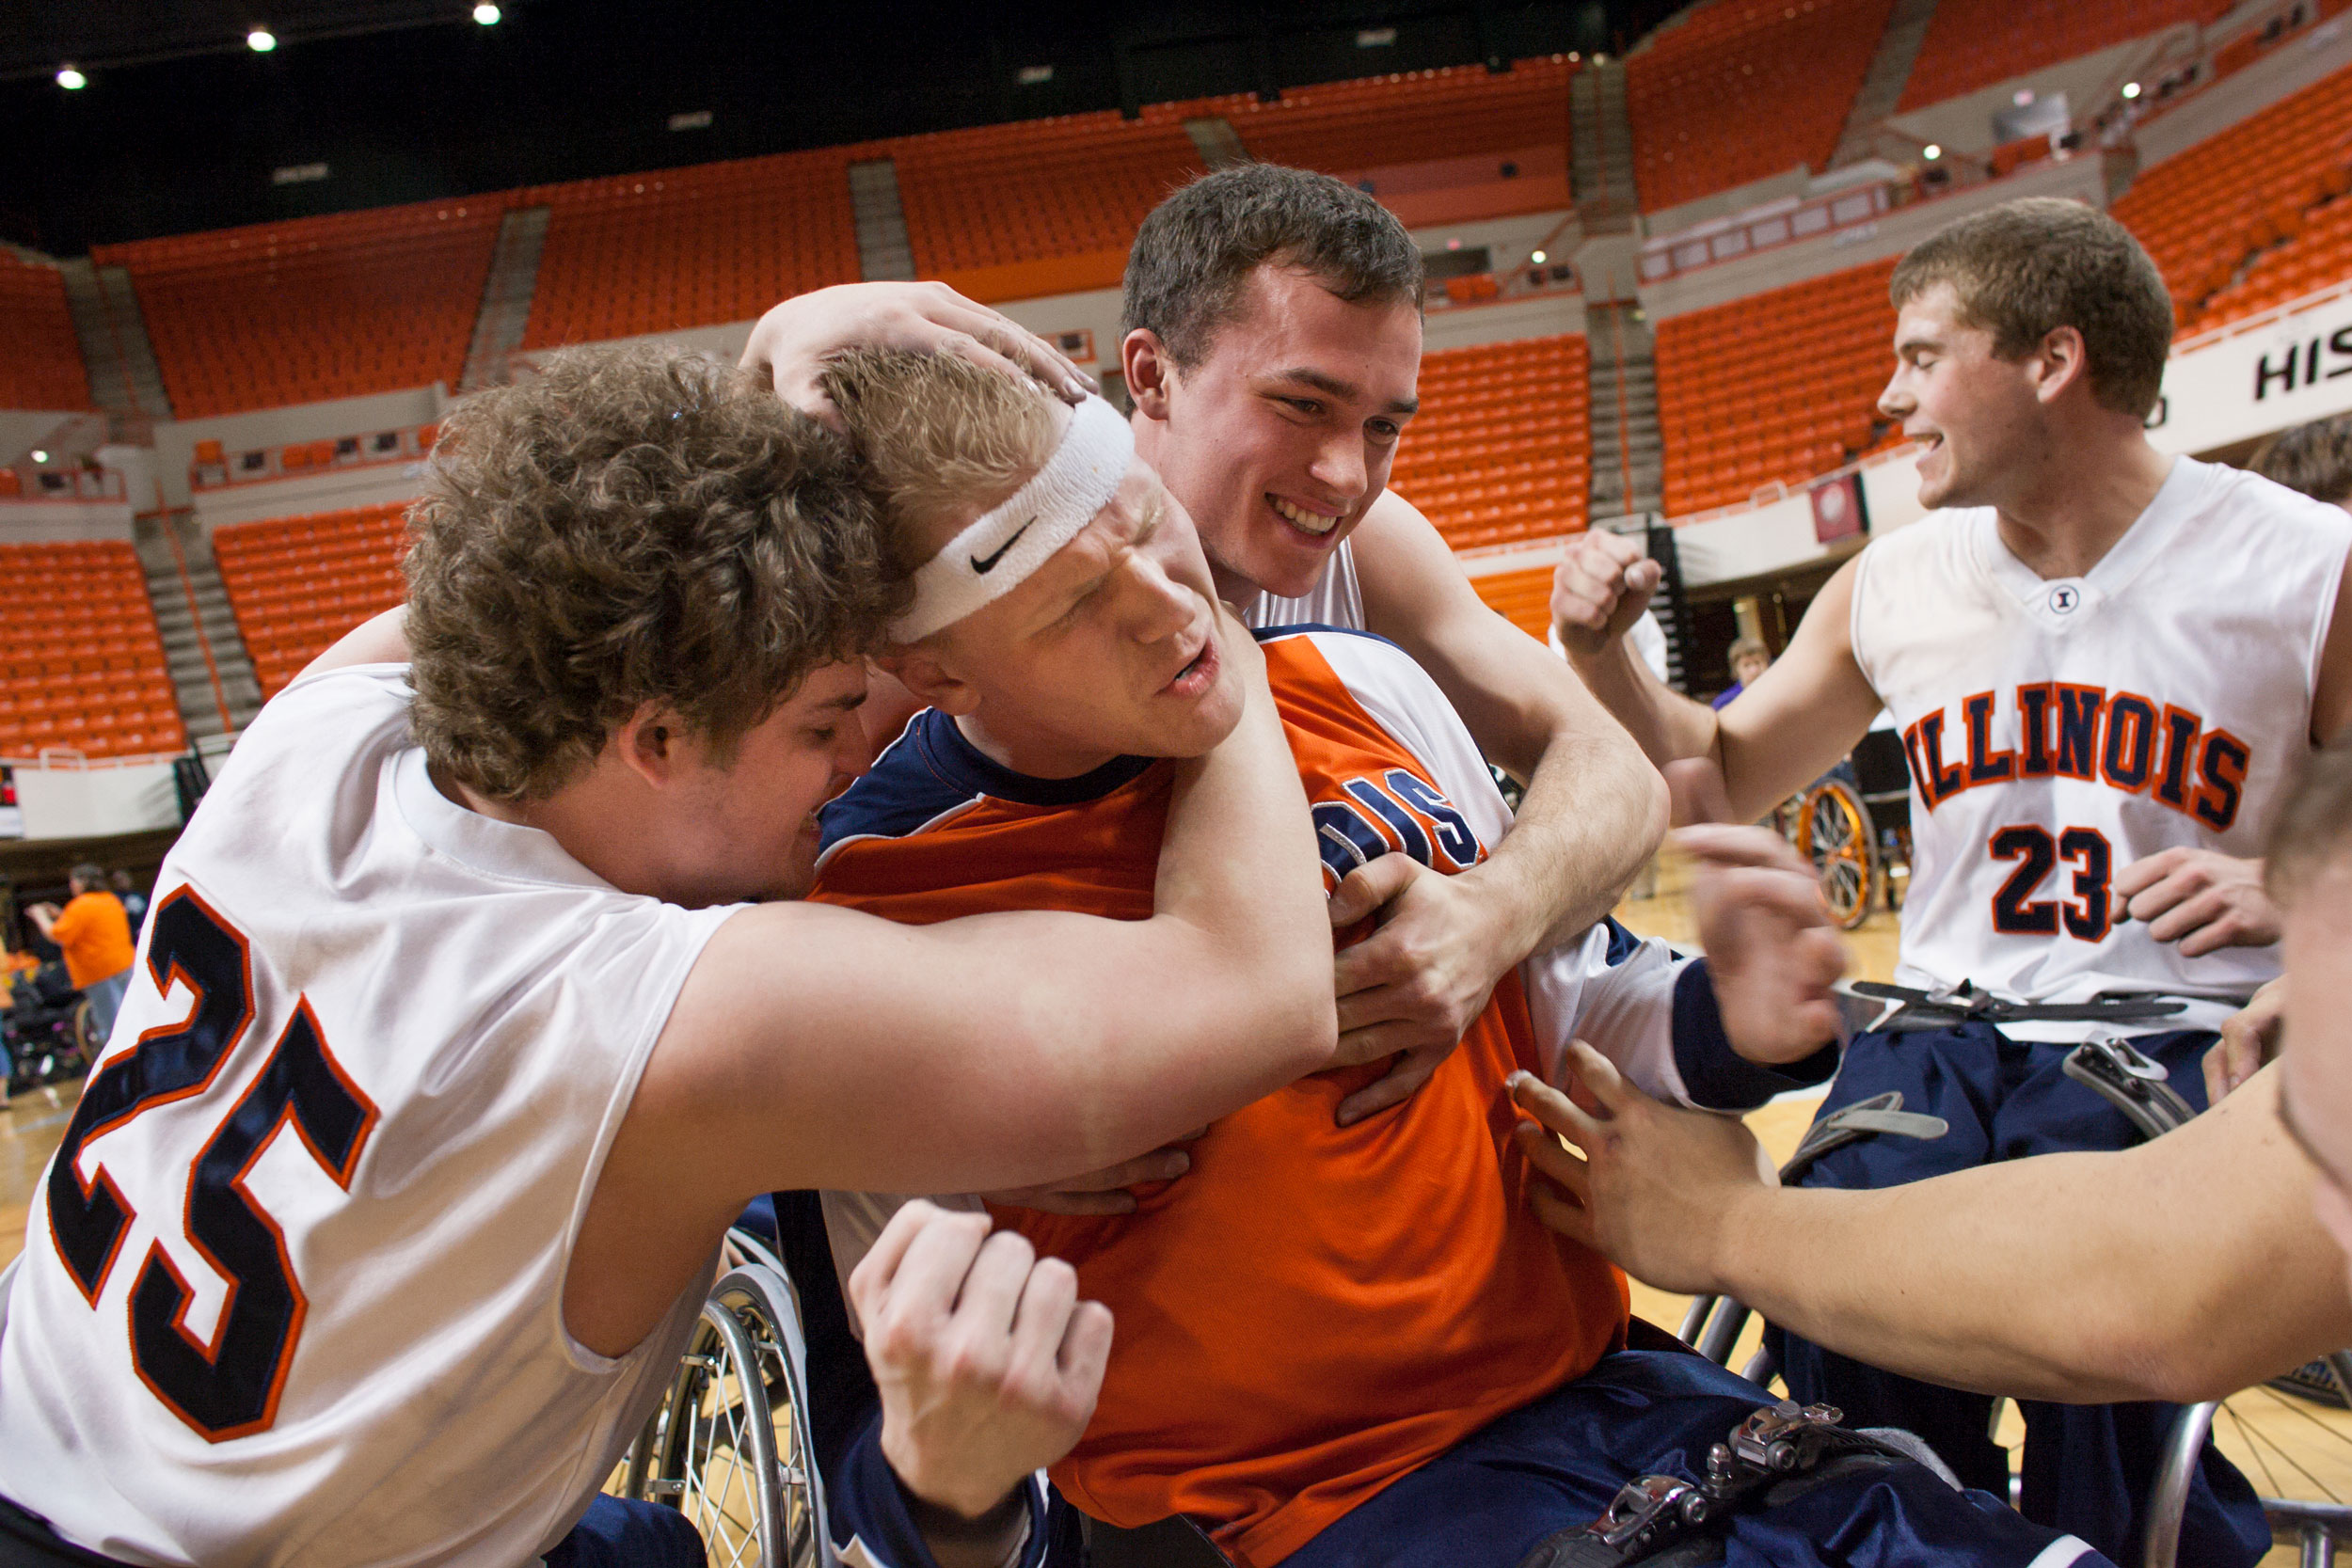 From left, Joey Gugliotta, Matt Buchi, Tom Smurr, and Lars Spenger celebrate after Illinois defeated Wisconsin-Whitewater, 63-58, to win the 2008 National Intercollegiate Wheelchair Basketball Tournament championship.